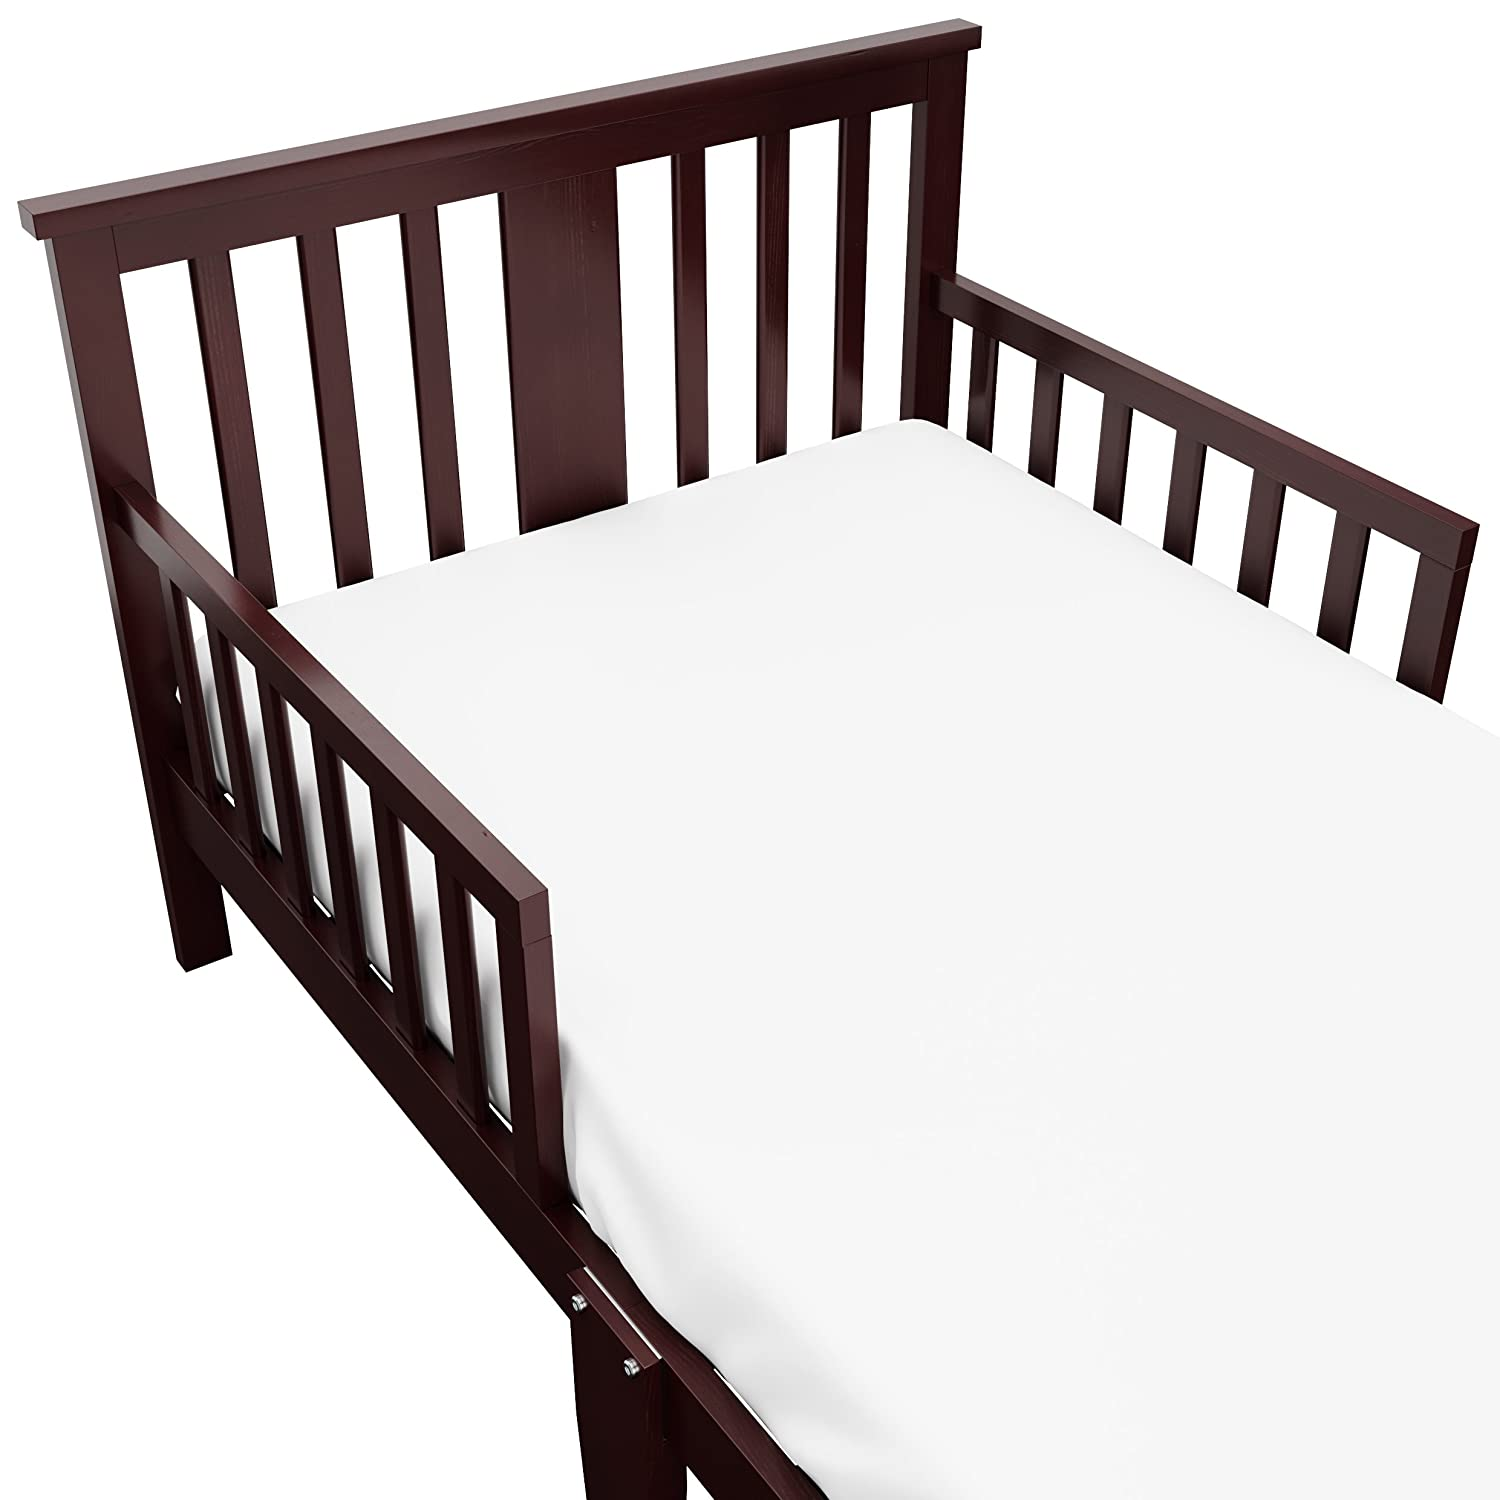 Guardrails on Both Sides for Protection Pine /& Composite Construction Meets or Exceeds all Federal Safety Standards Storkcraft Mission Ridge Toddler Bed Espresso Fits Standard-Size Toddler Mattress